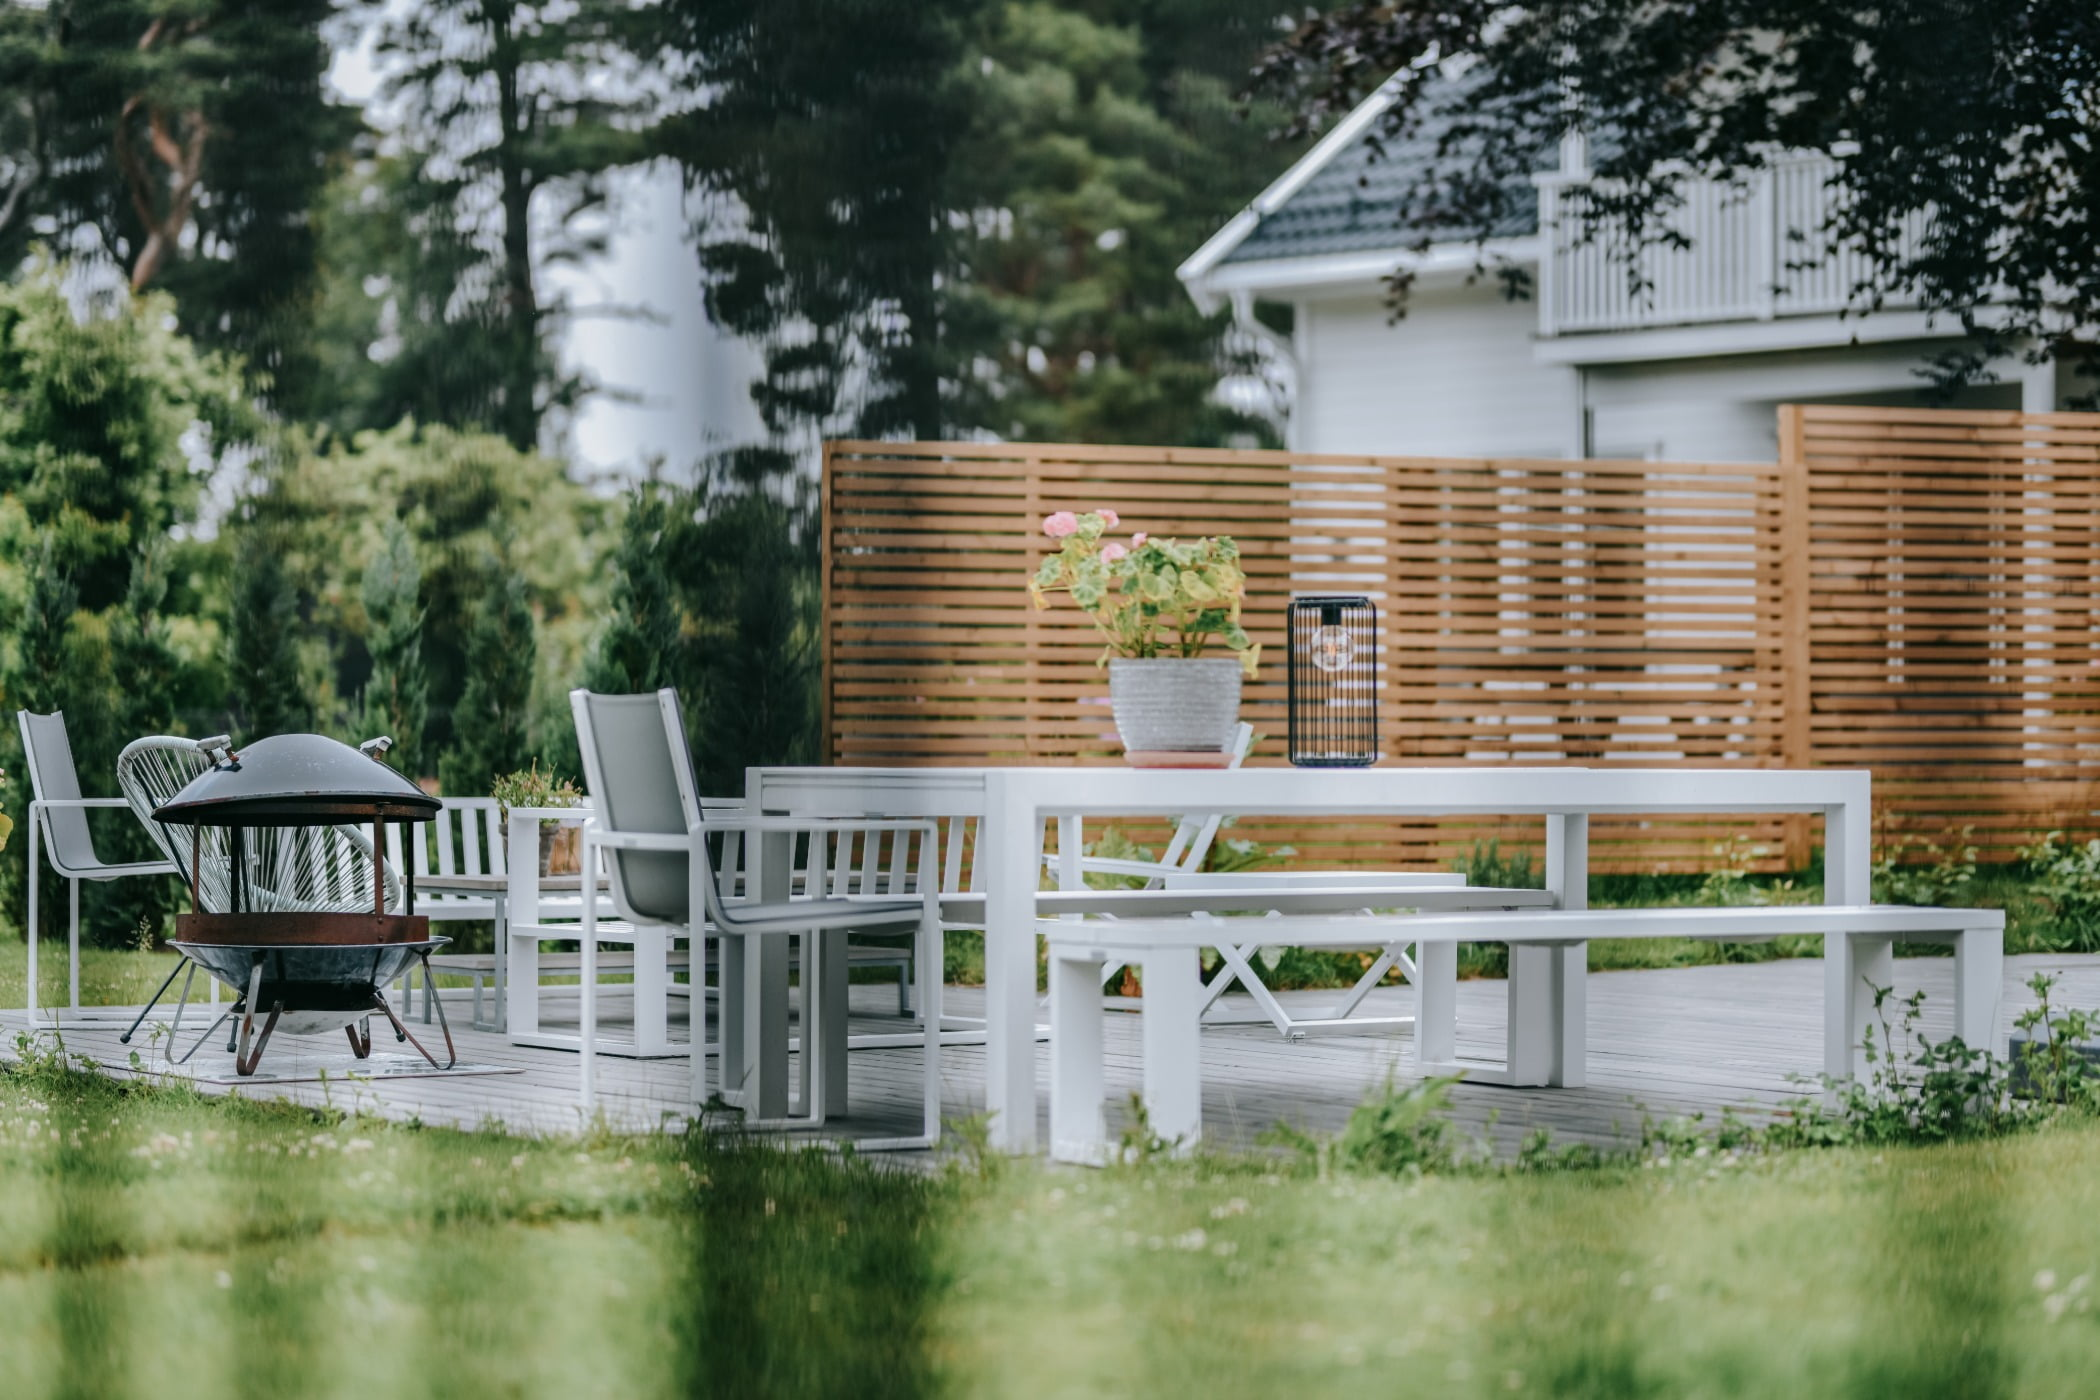 Outdoor table, Plant, Property, Building, Furniture, Chair, Tree, Architecture